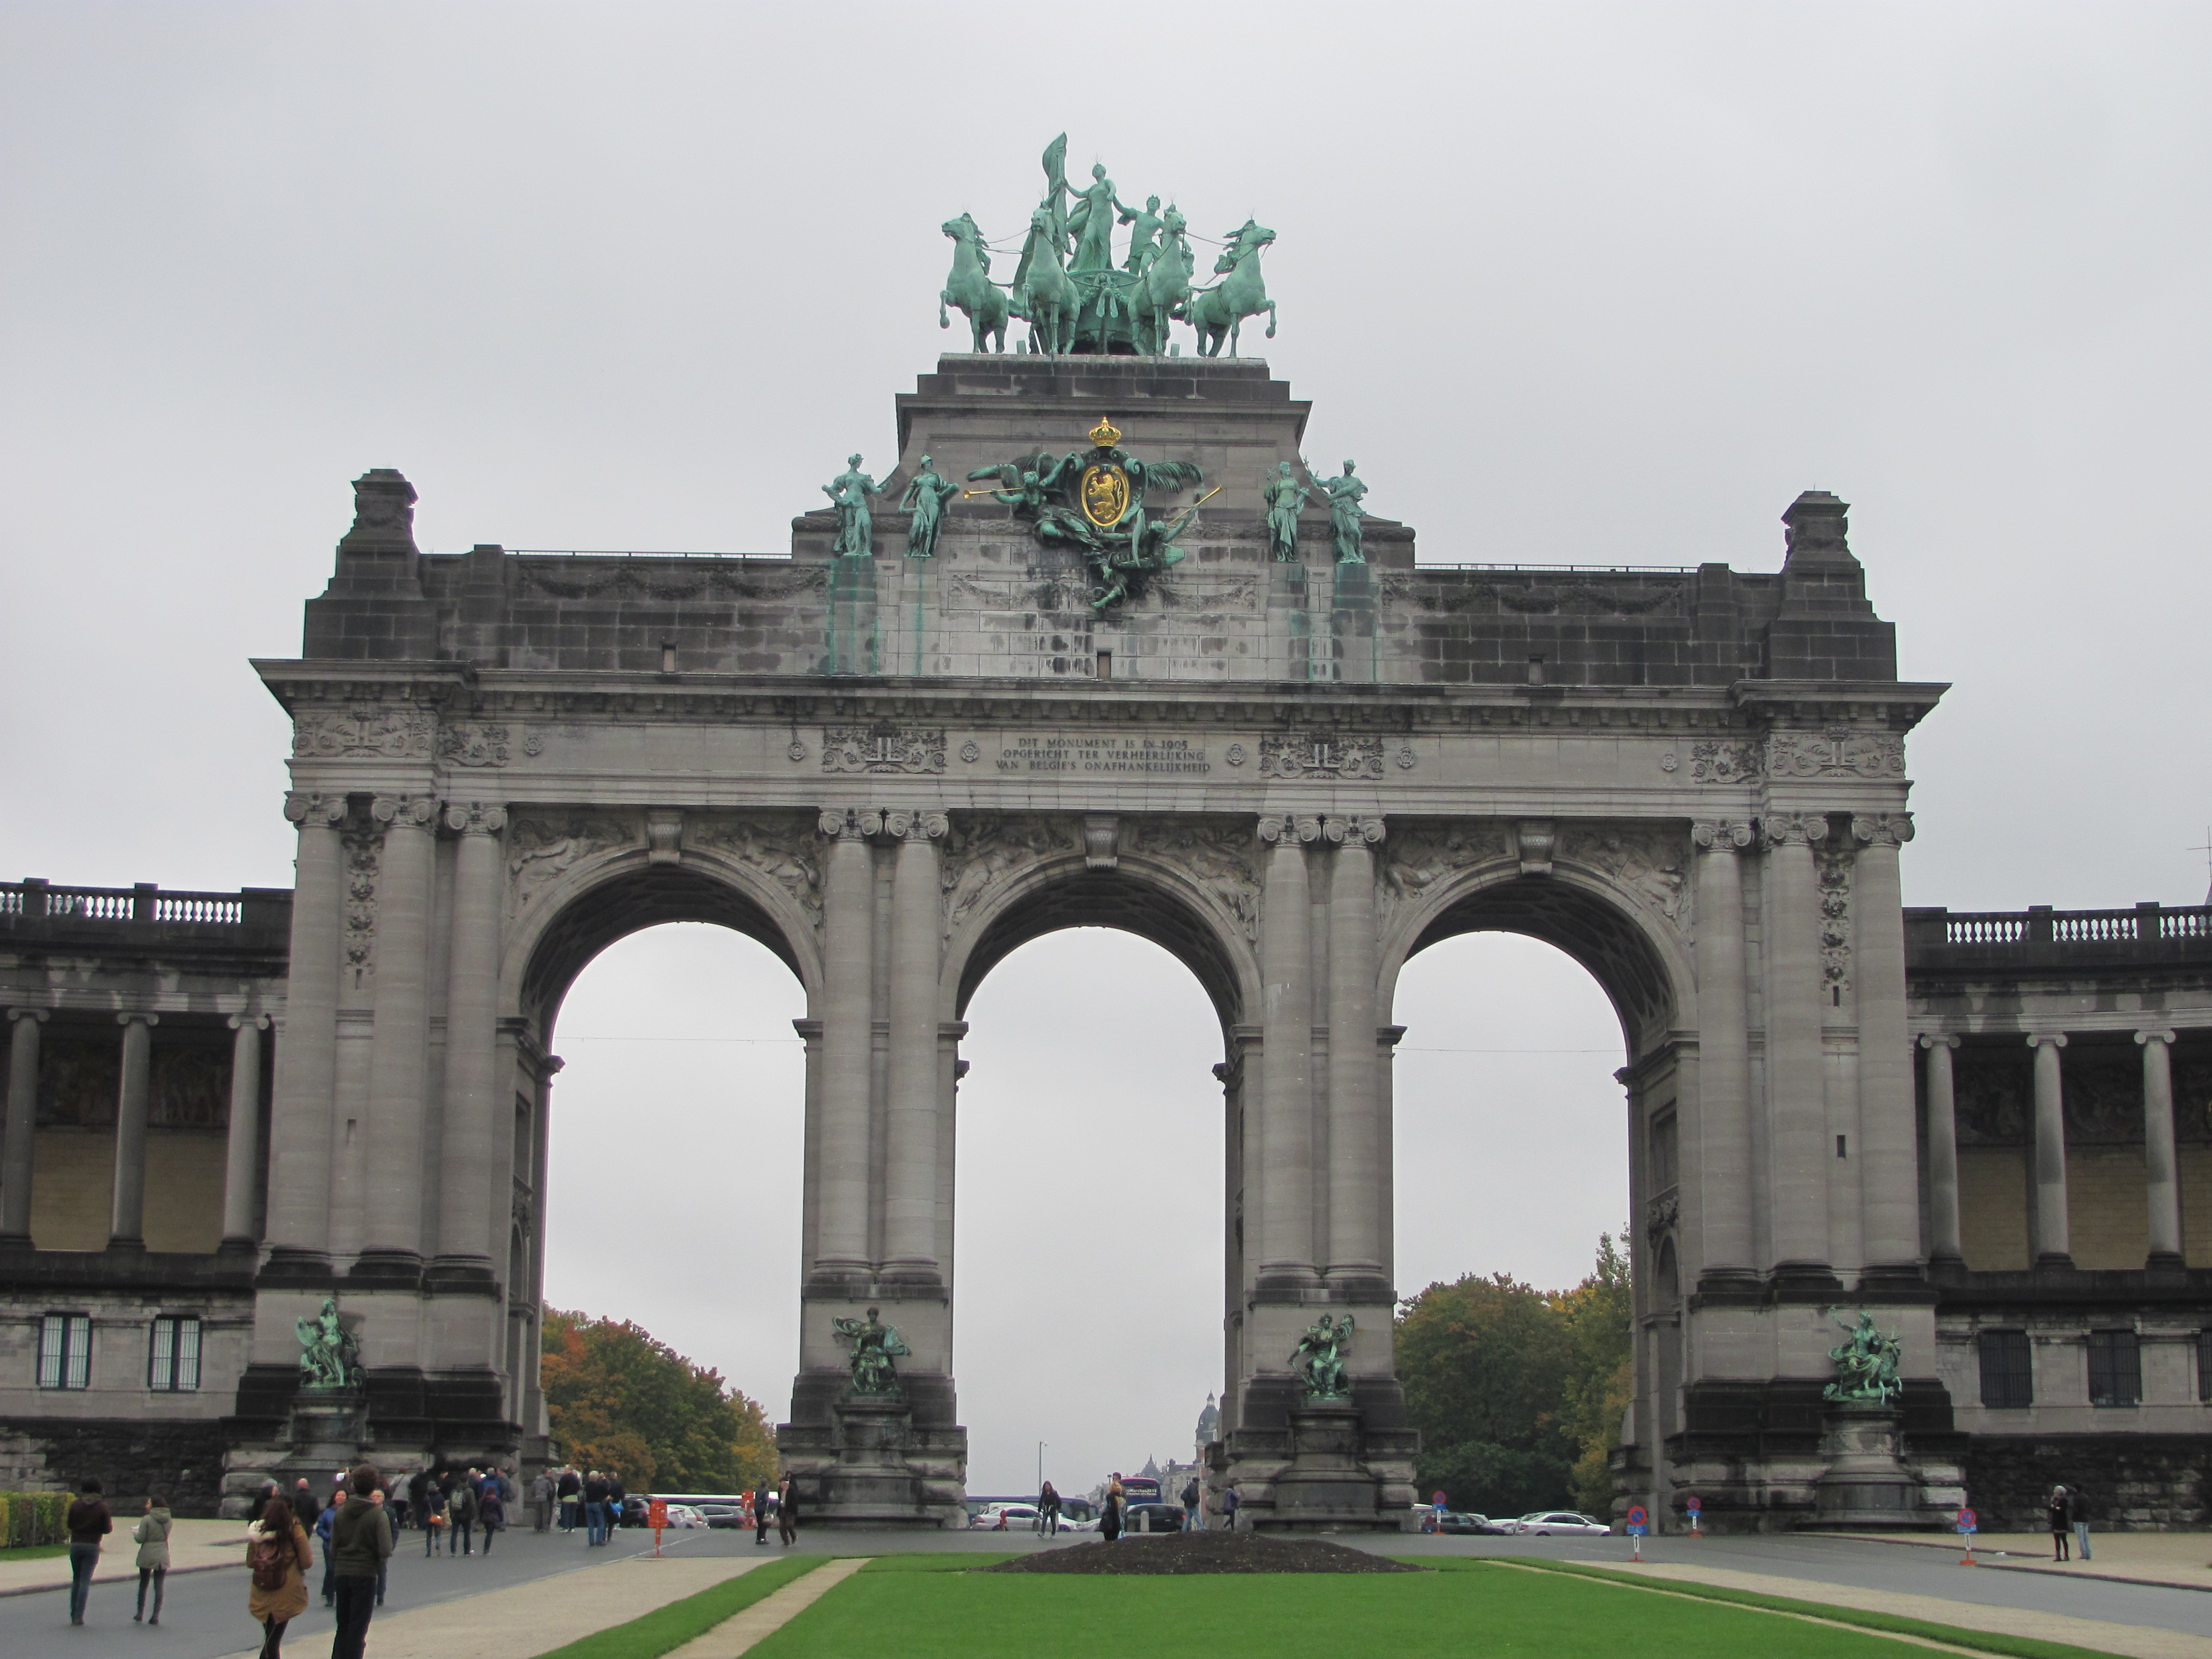 Brussels Arch